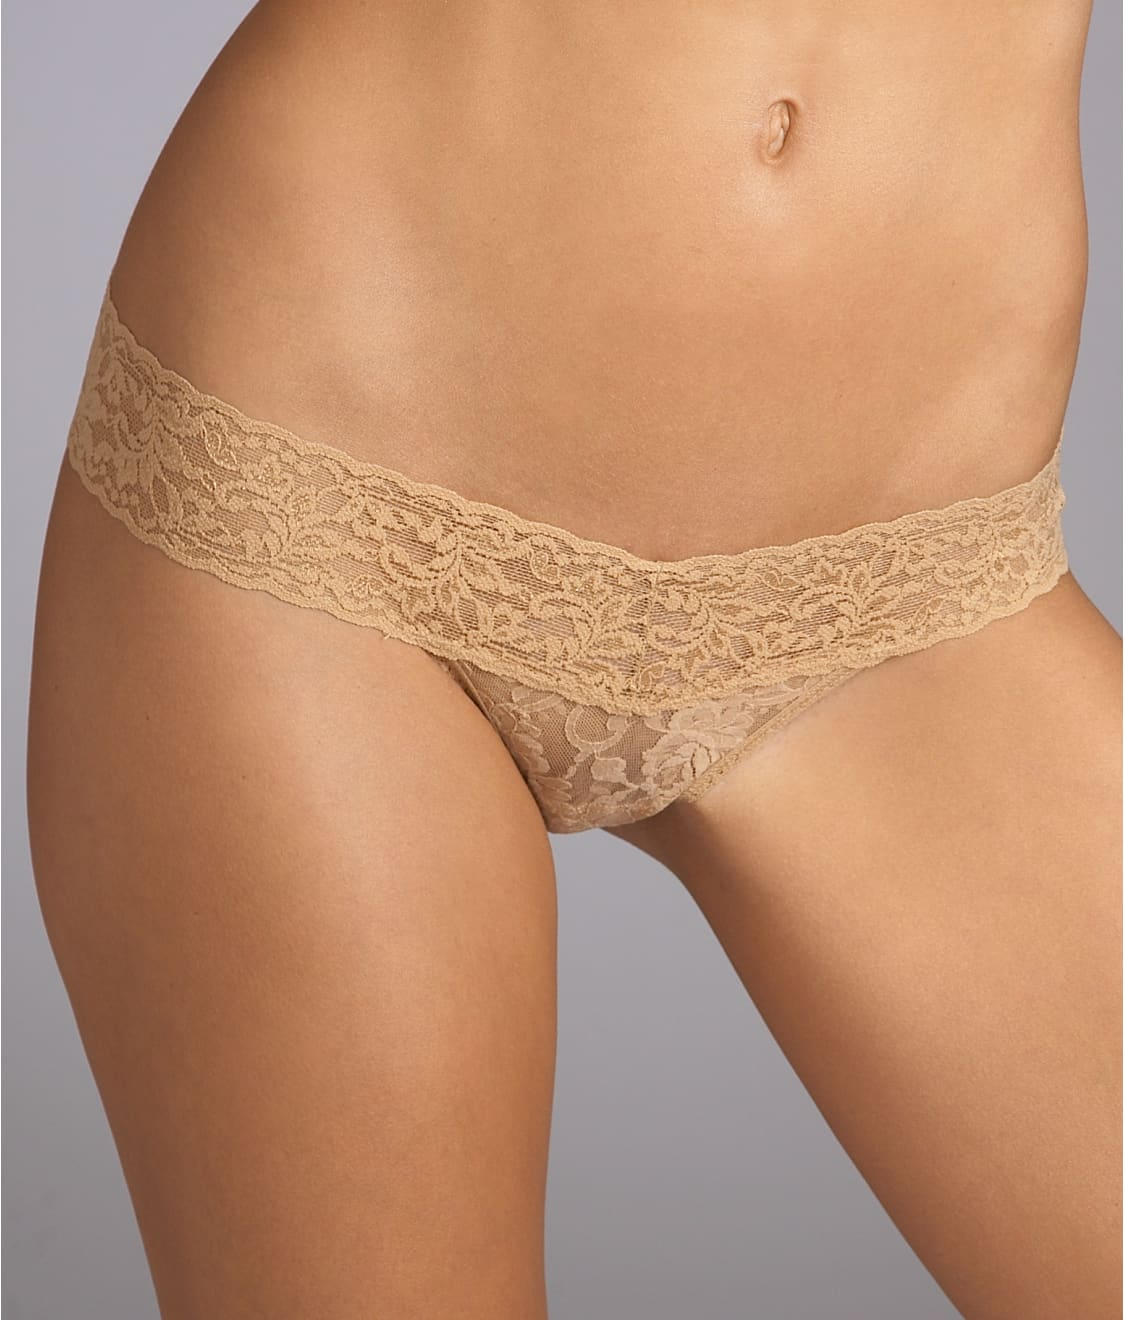 hanky panky signature lace low rise thong 3-pack panty 49kbox2 at